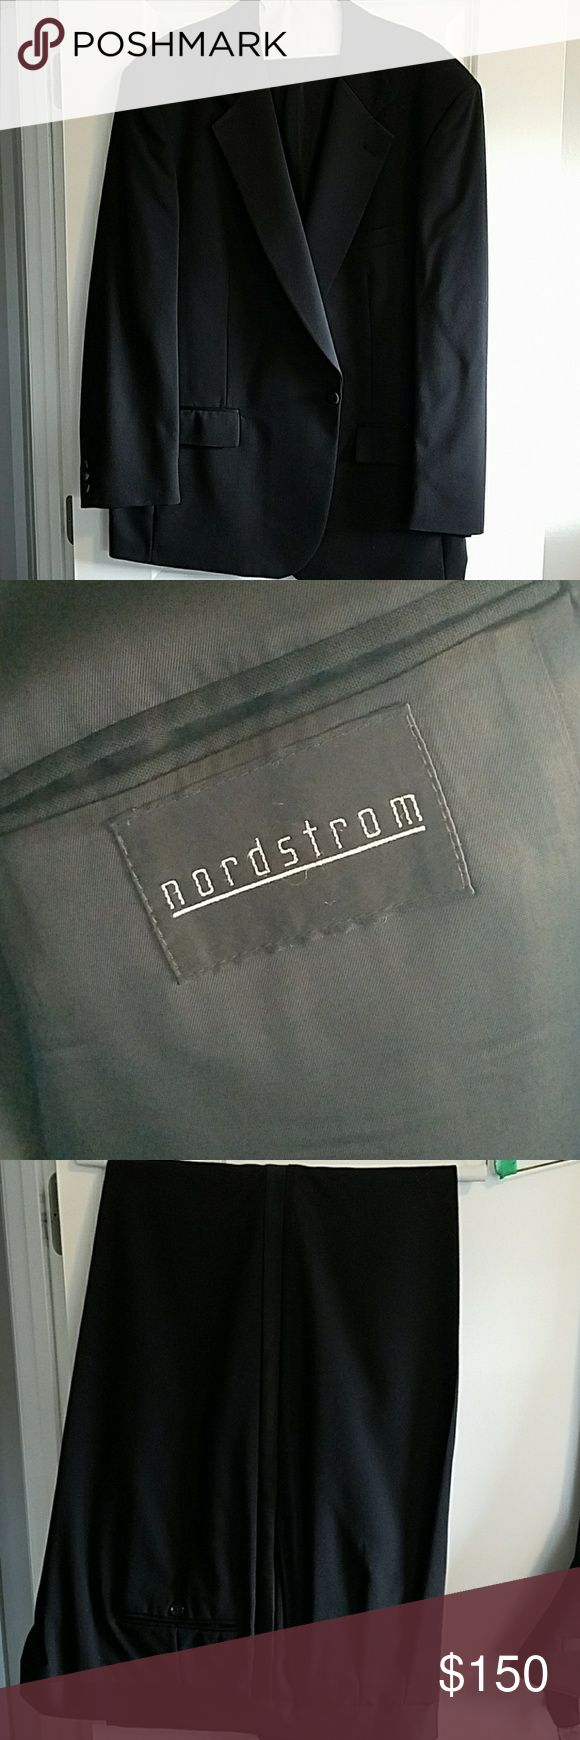 Tuxedo Worn once, classy Tuxedo from Nordsrroms. Pants are a 46x 32 Nordstrom Suits & Blazers Tuxedos